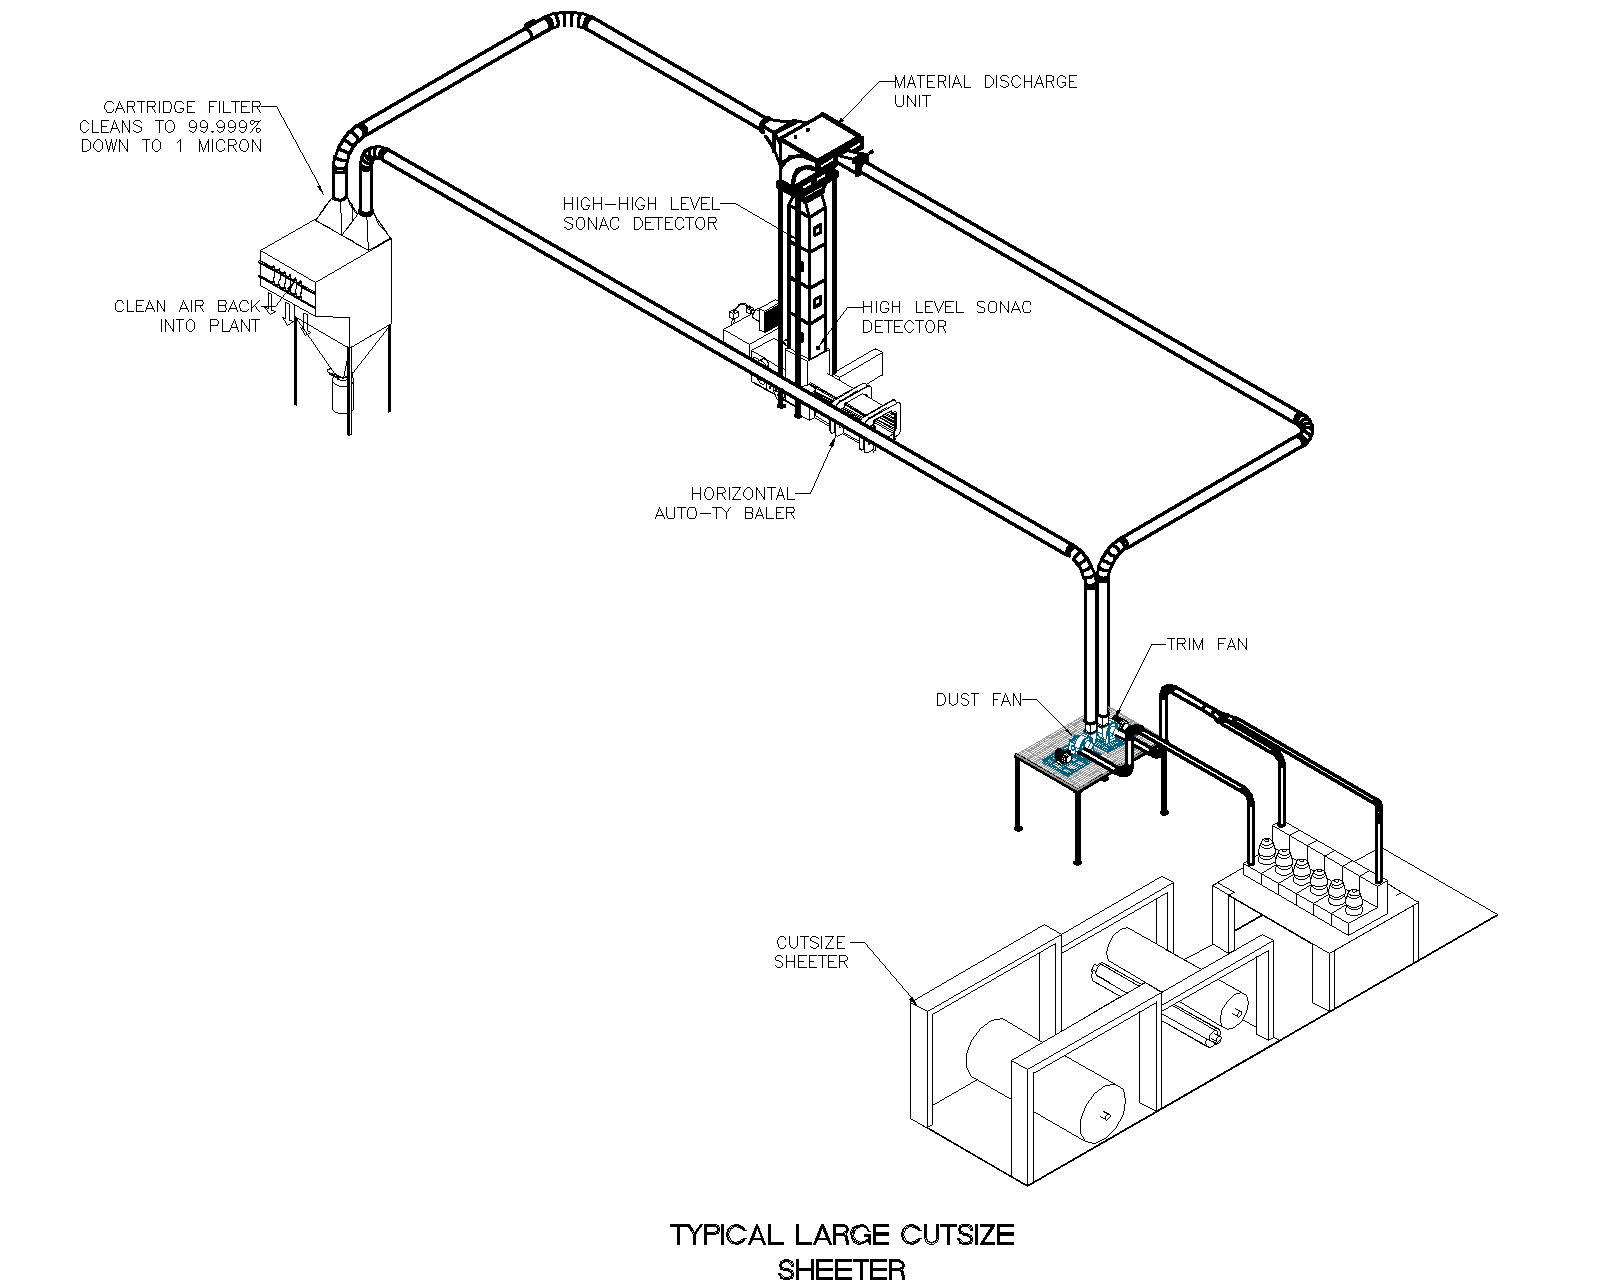 Cutsize Sheeter Trim and Dust System Illustration